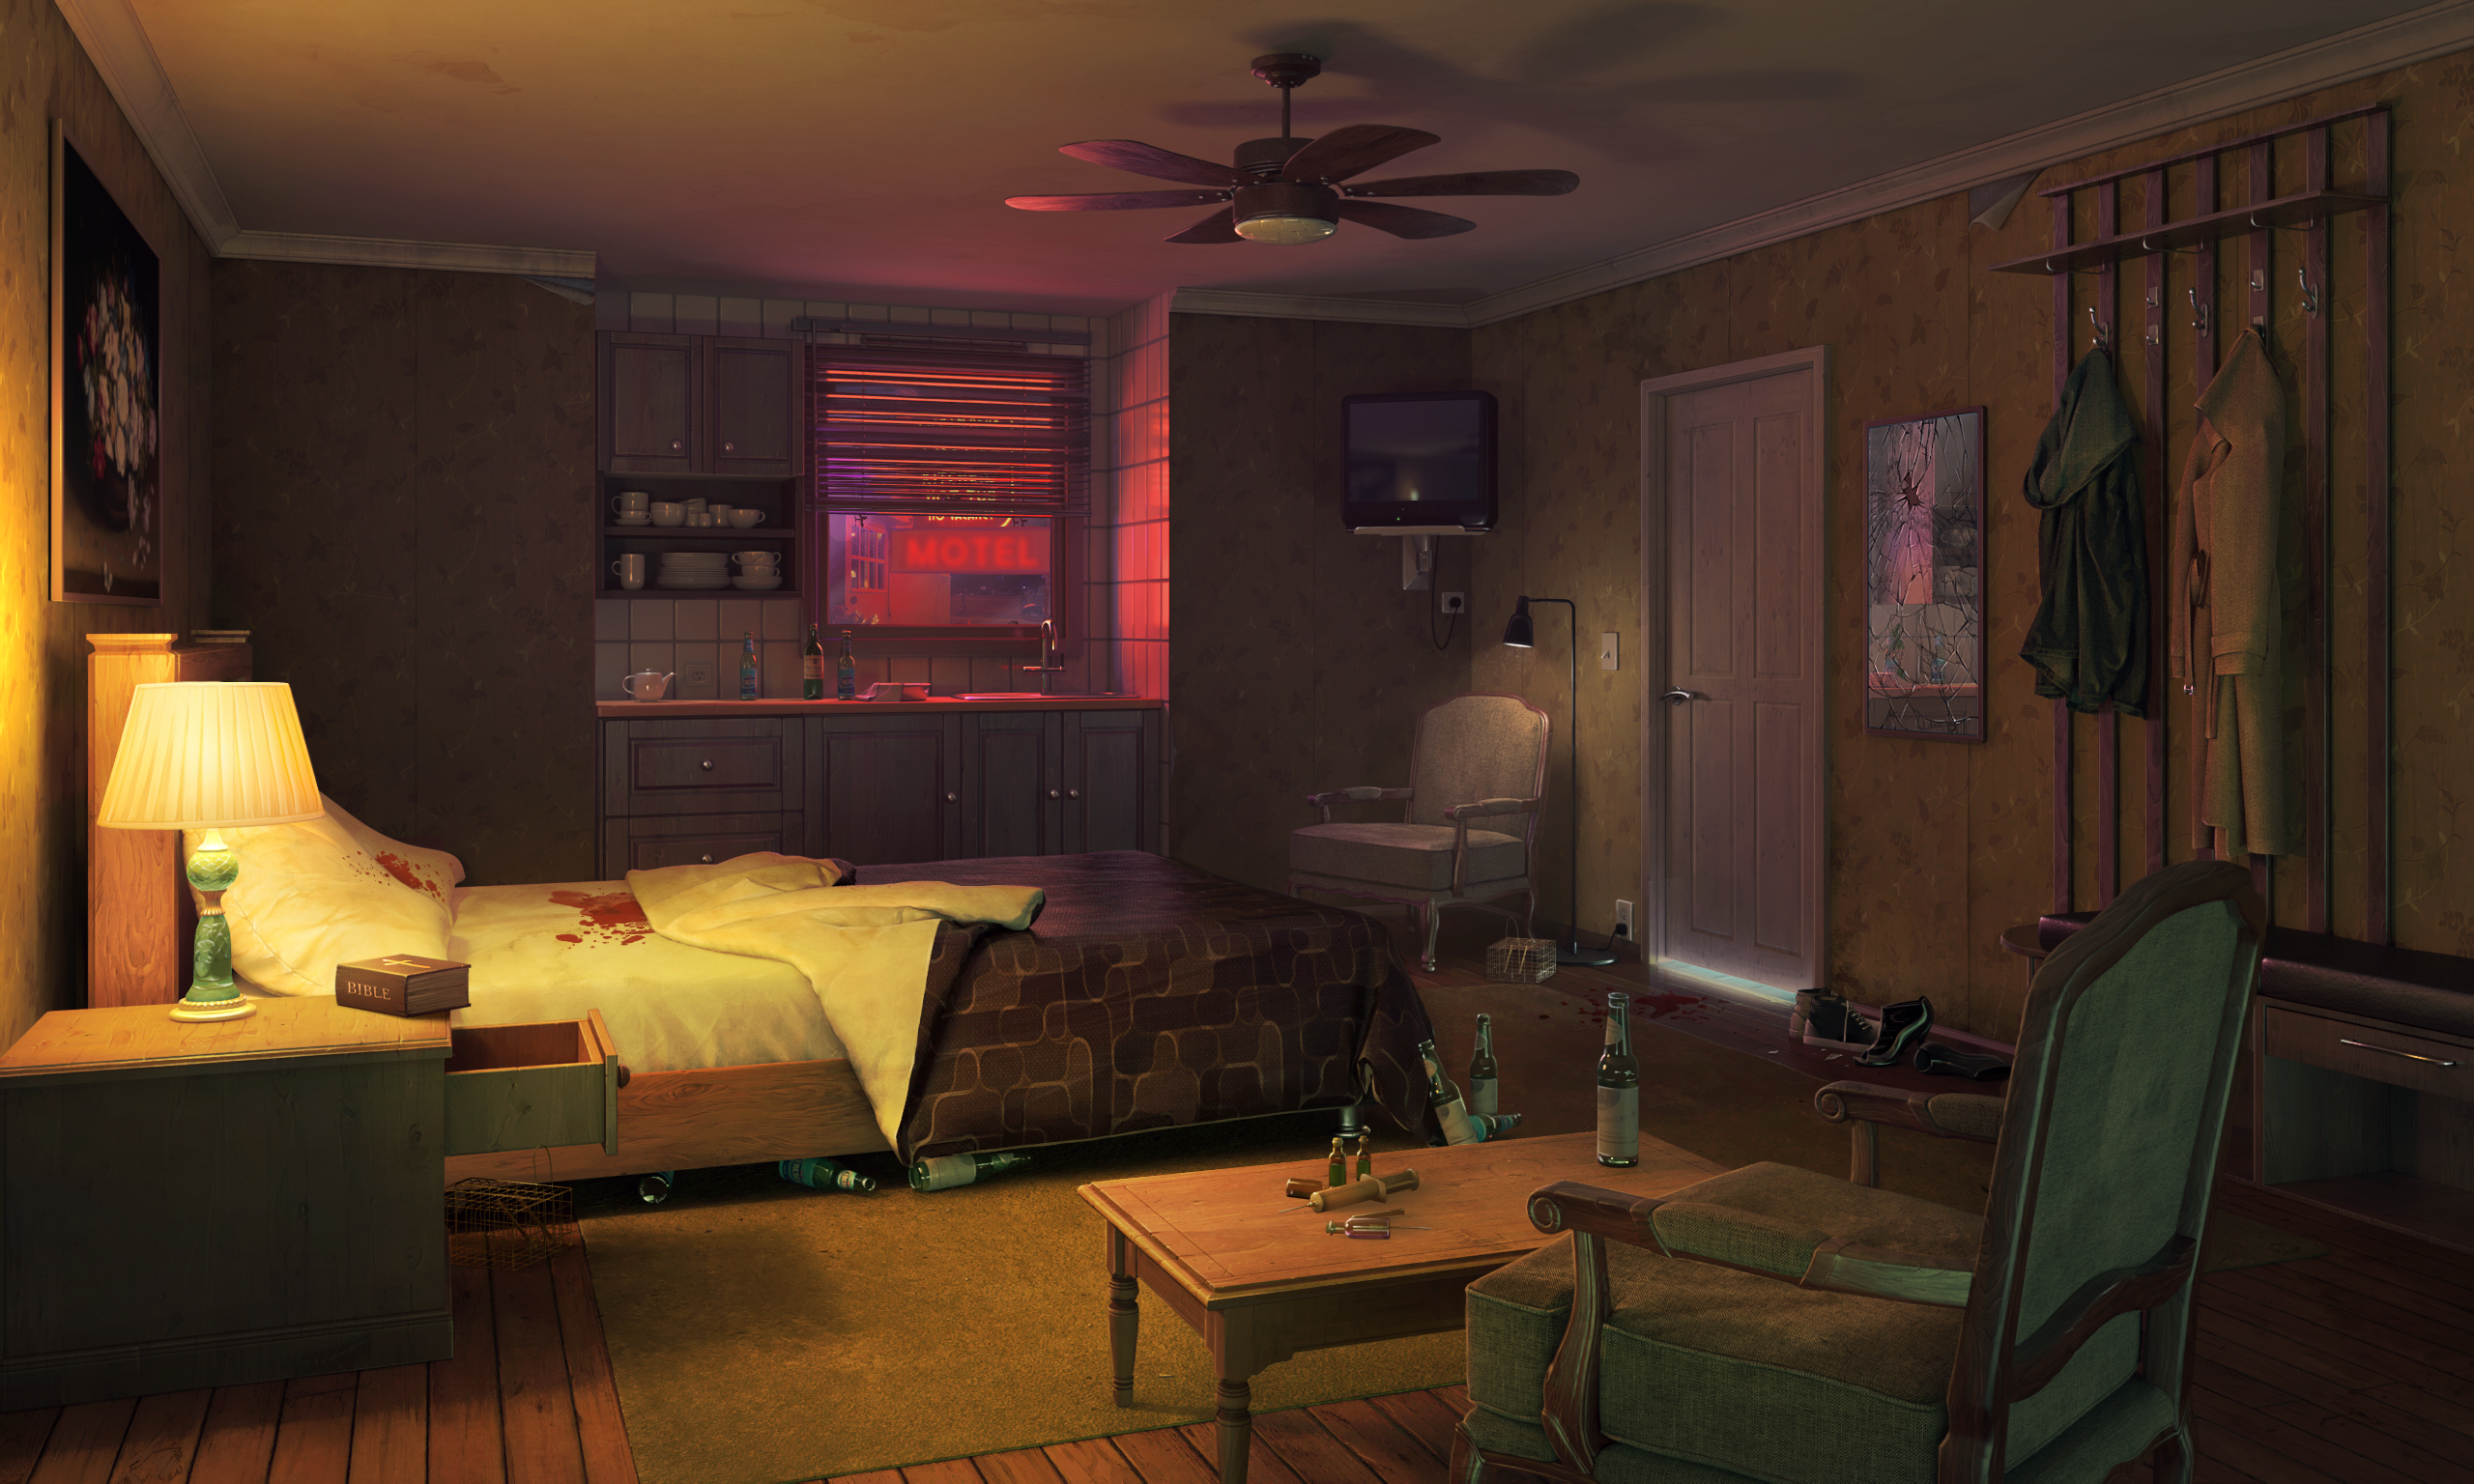 Motel room xfiles background deepstate motel Background 2560x1536